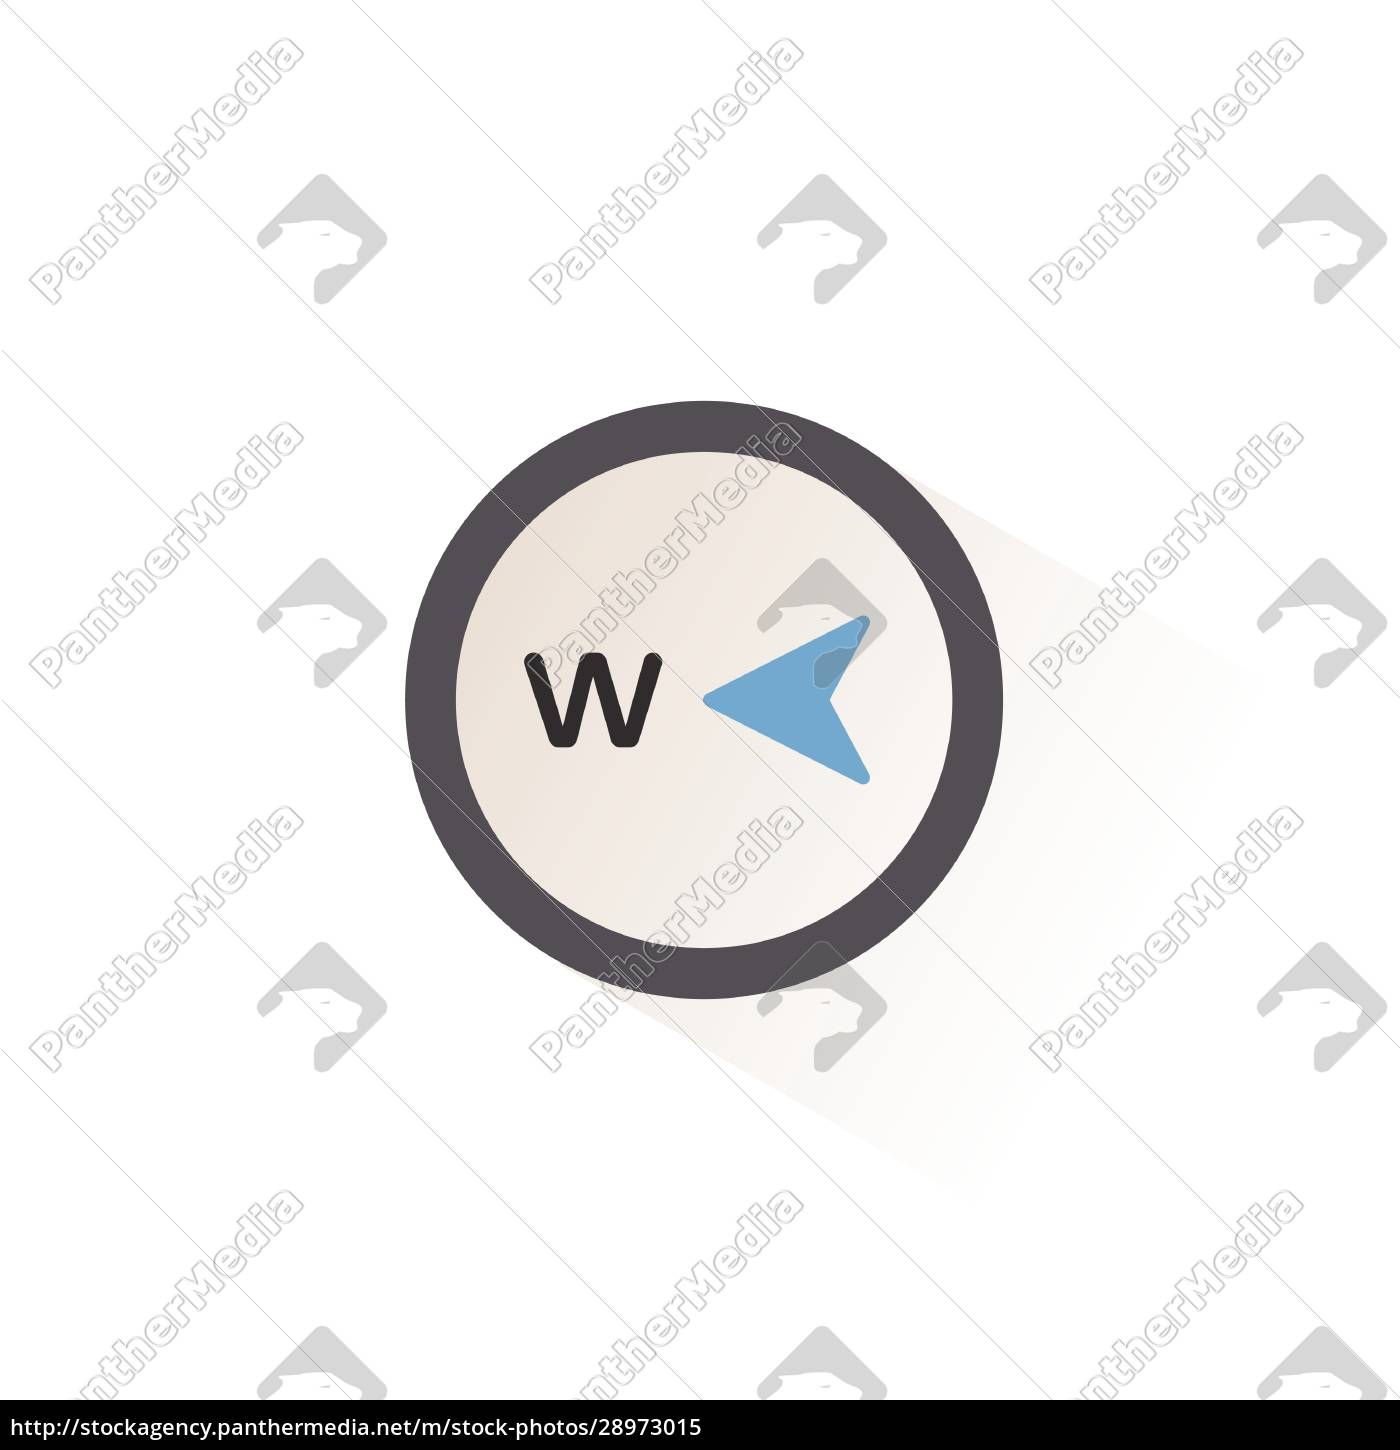 west, direction., isolated, color, icon., weather - 28973015